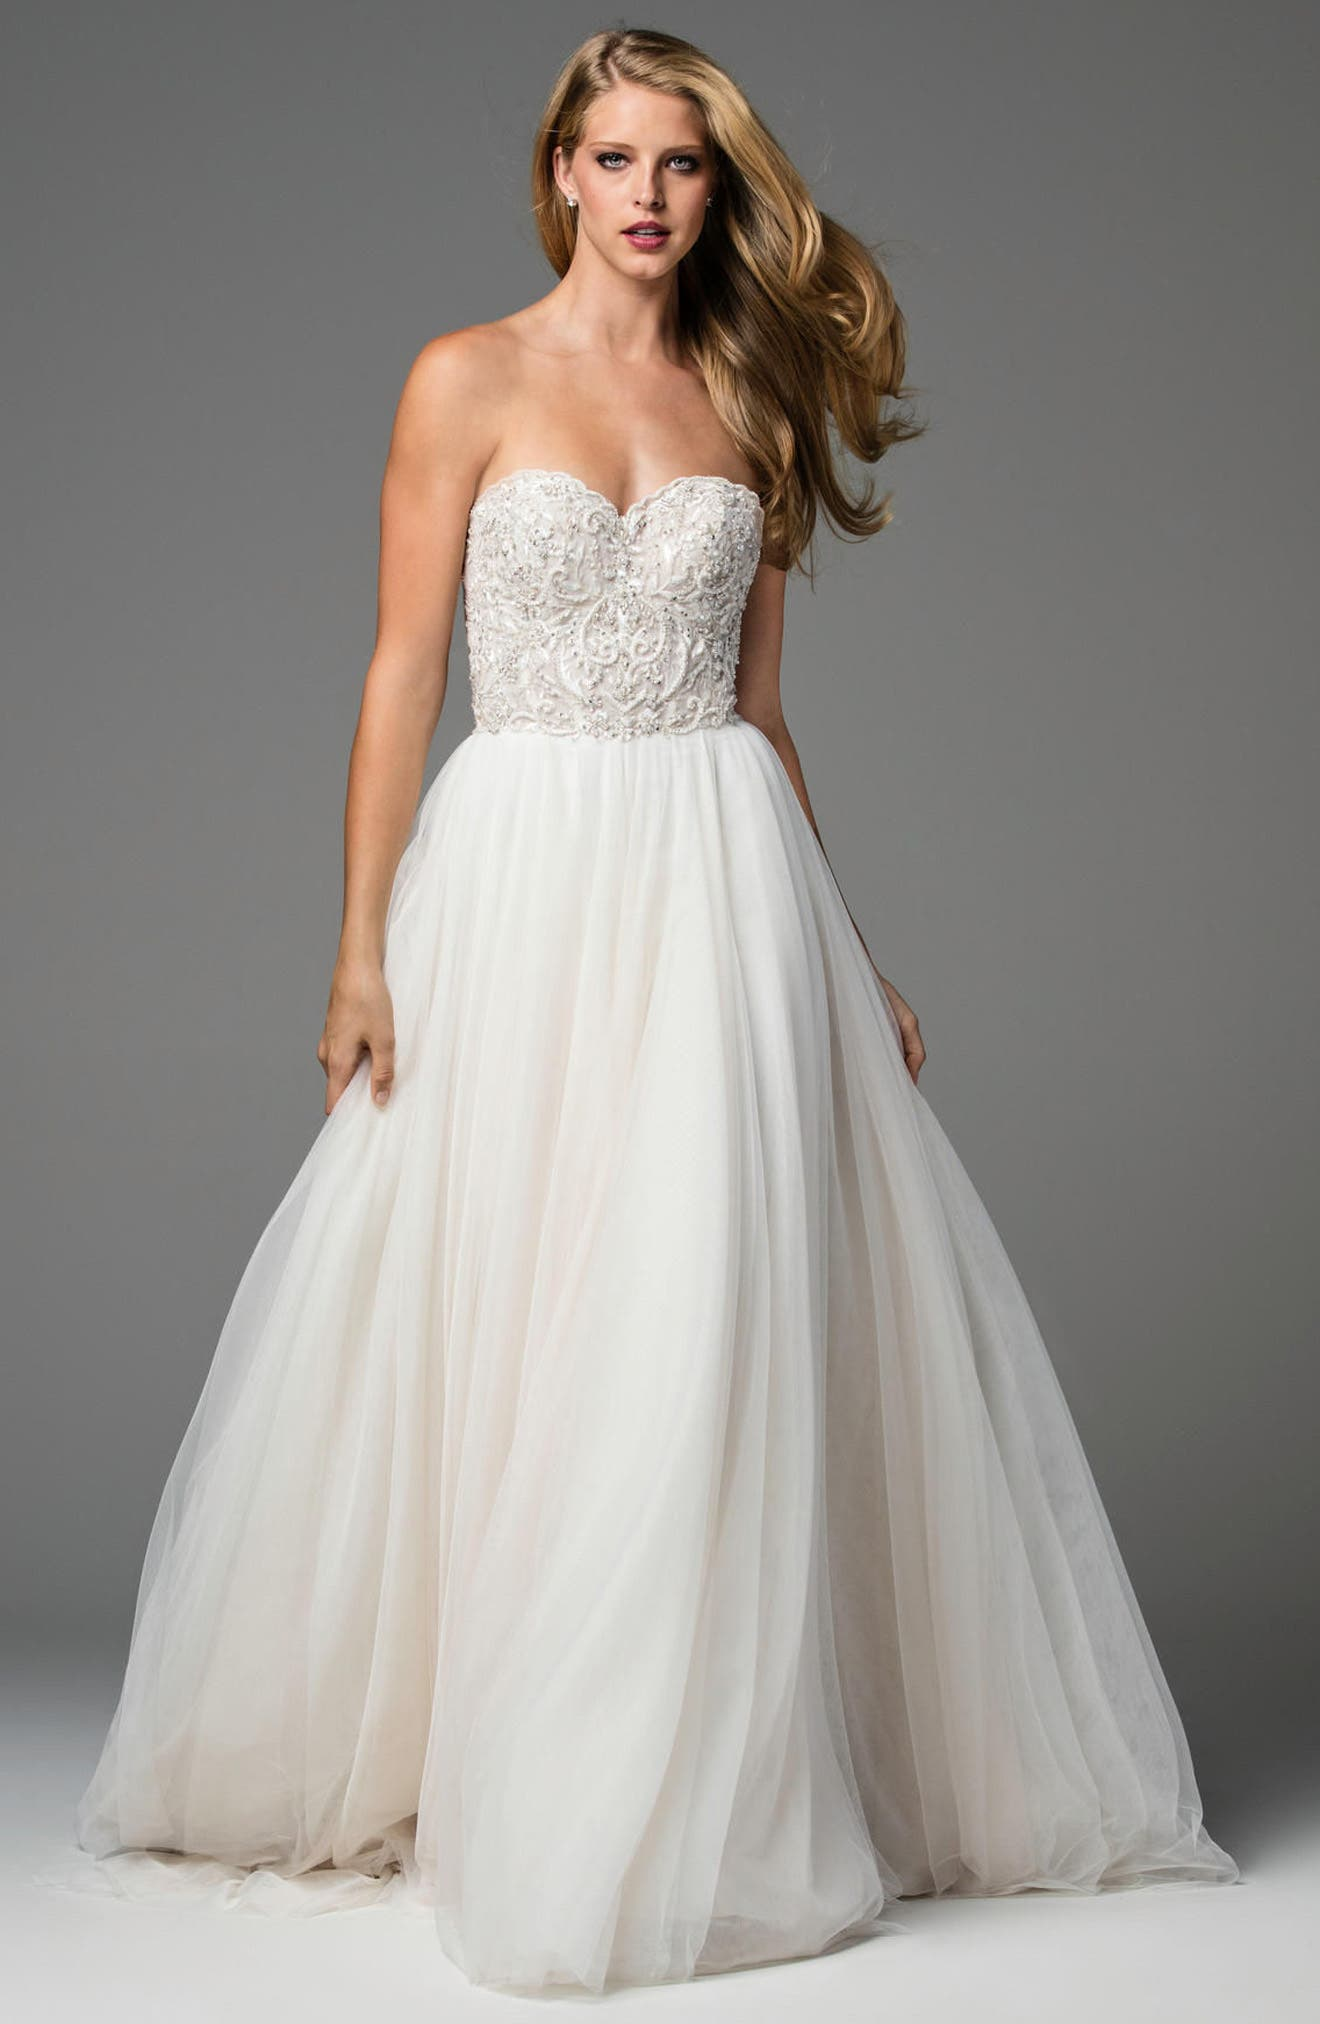 Rosina Embellished Strapless Lace & Tulle A-Line Gown,                             Alternate thumbnail 3, color,                             REISLING